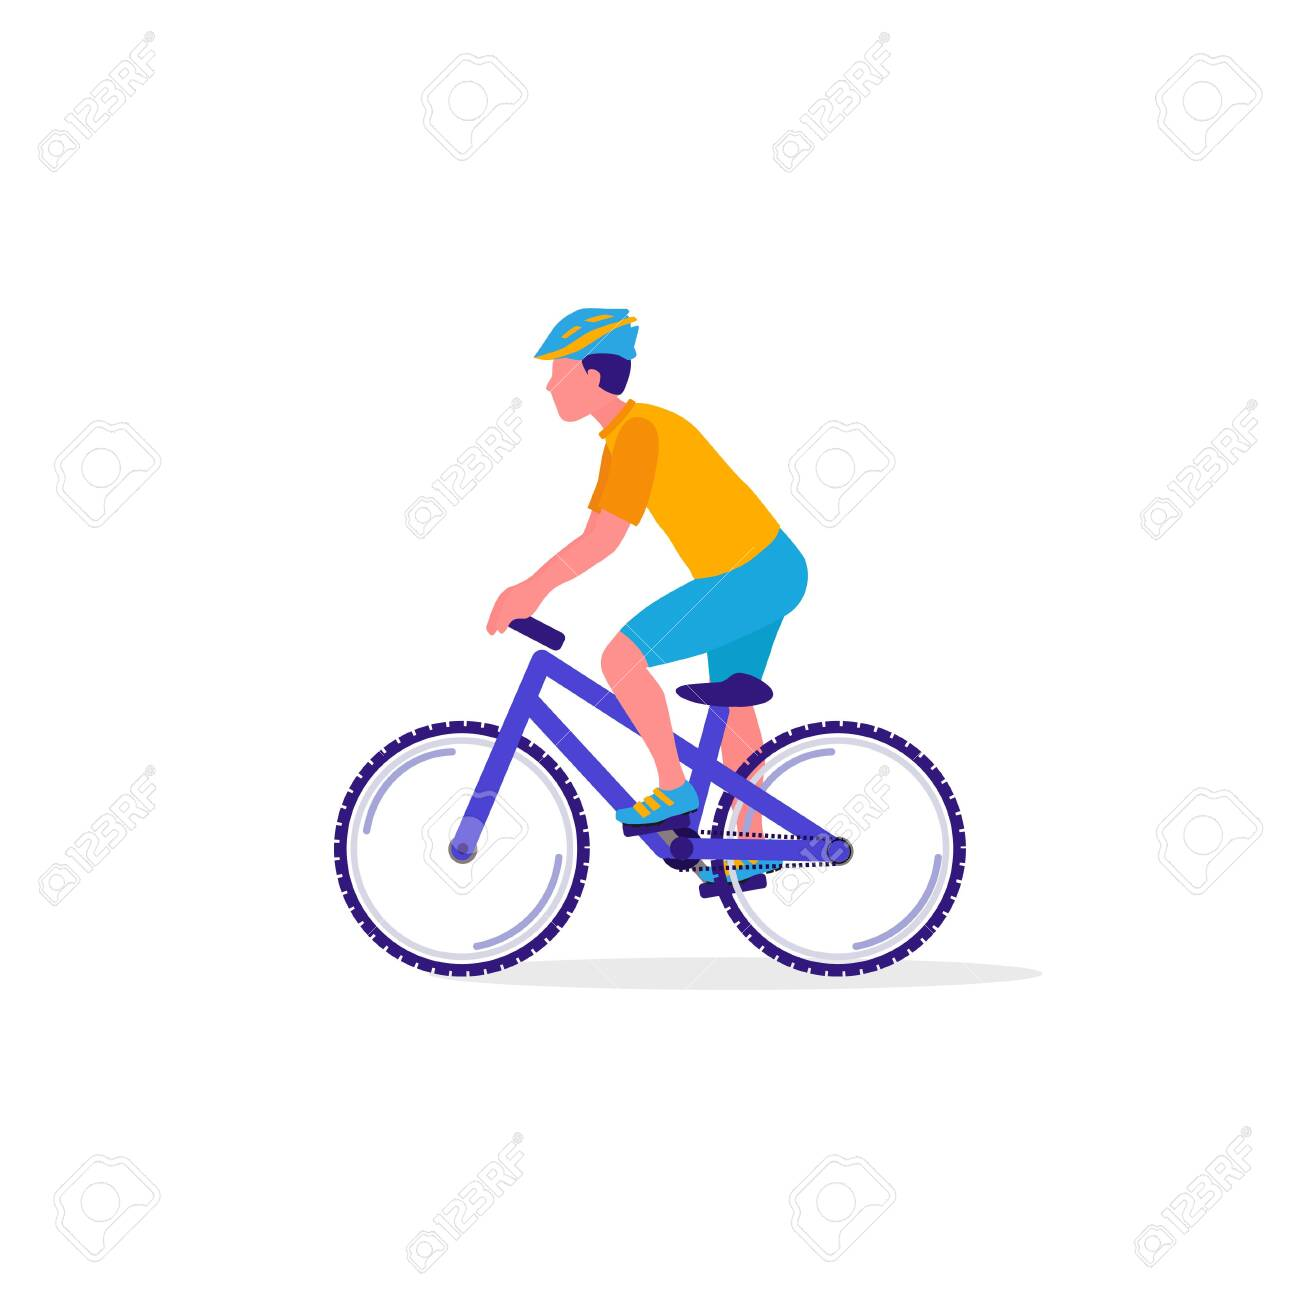 Cyclist on bicycle. Sport, Leisure Activity concept. Healthy lifestyle and fitness. Vector Illustration - 142775985